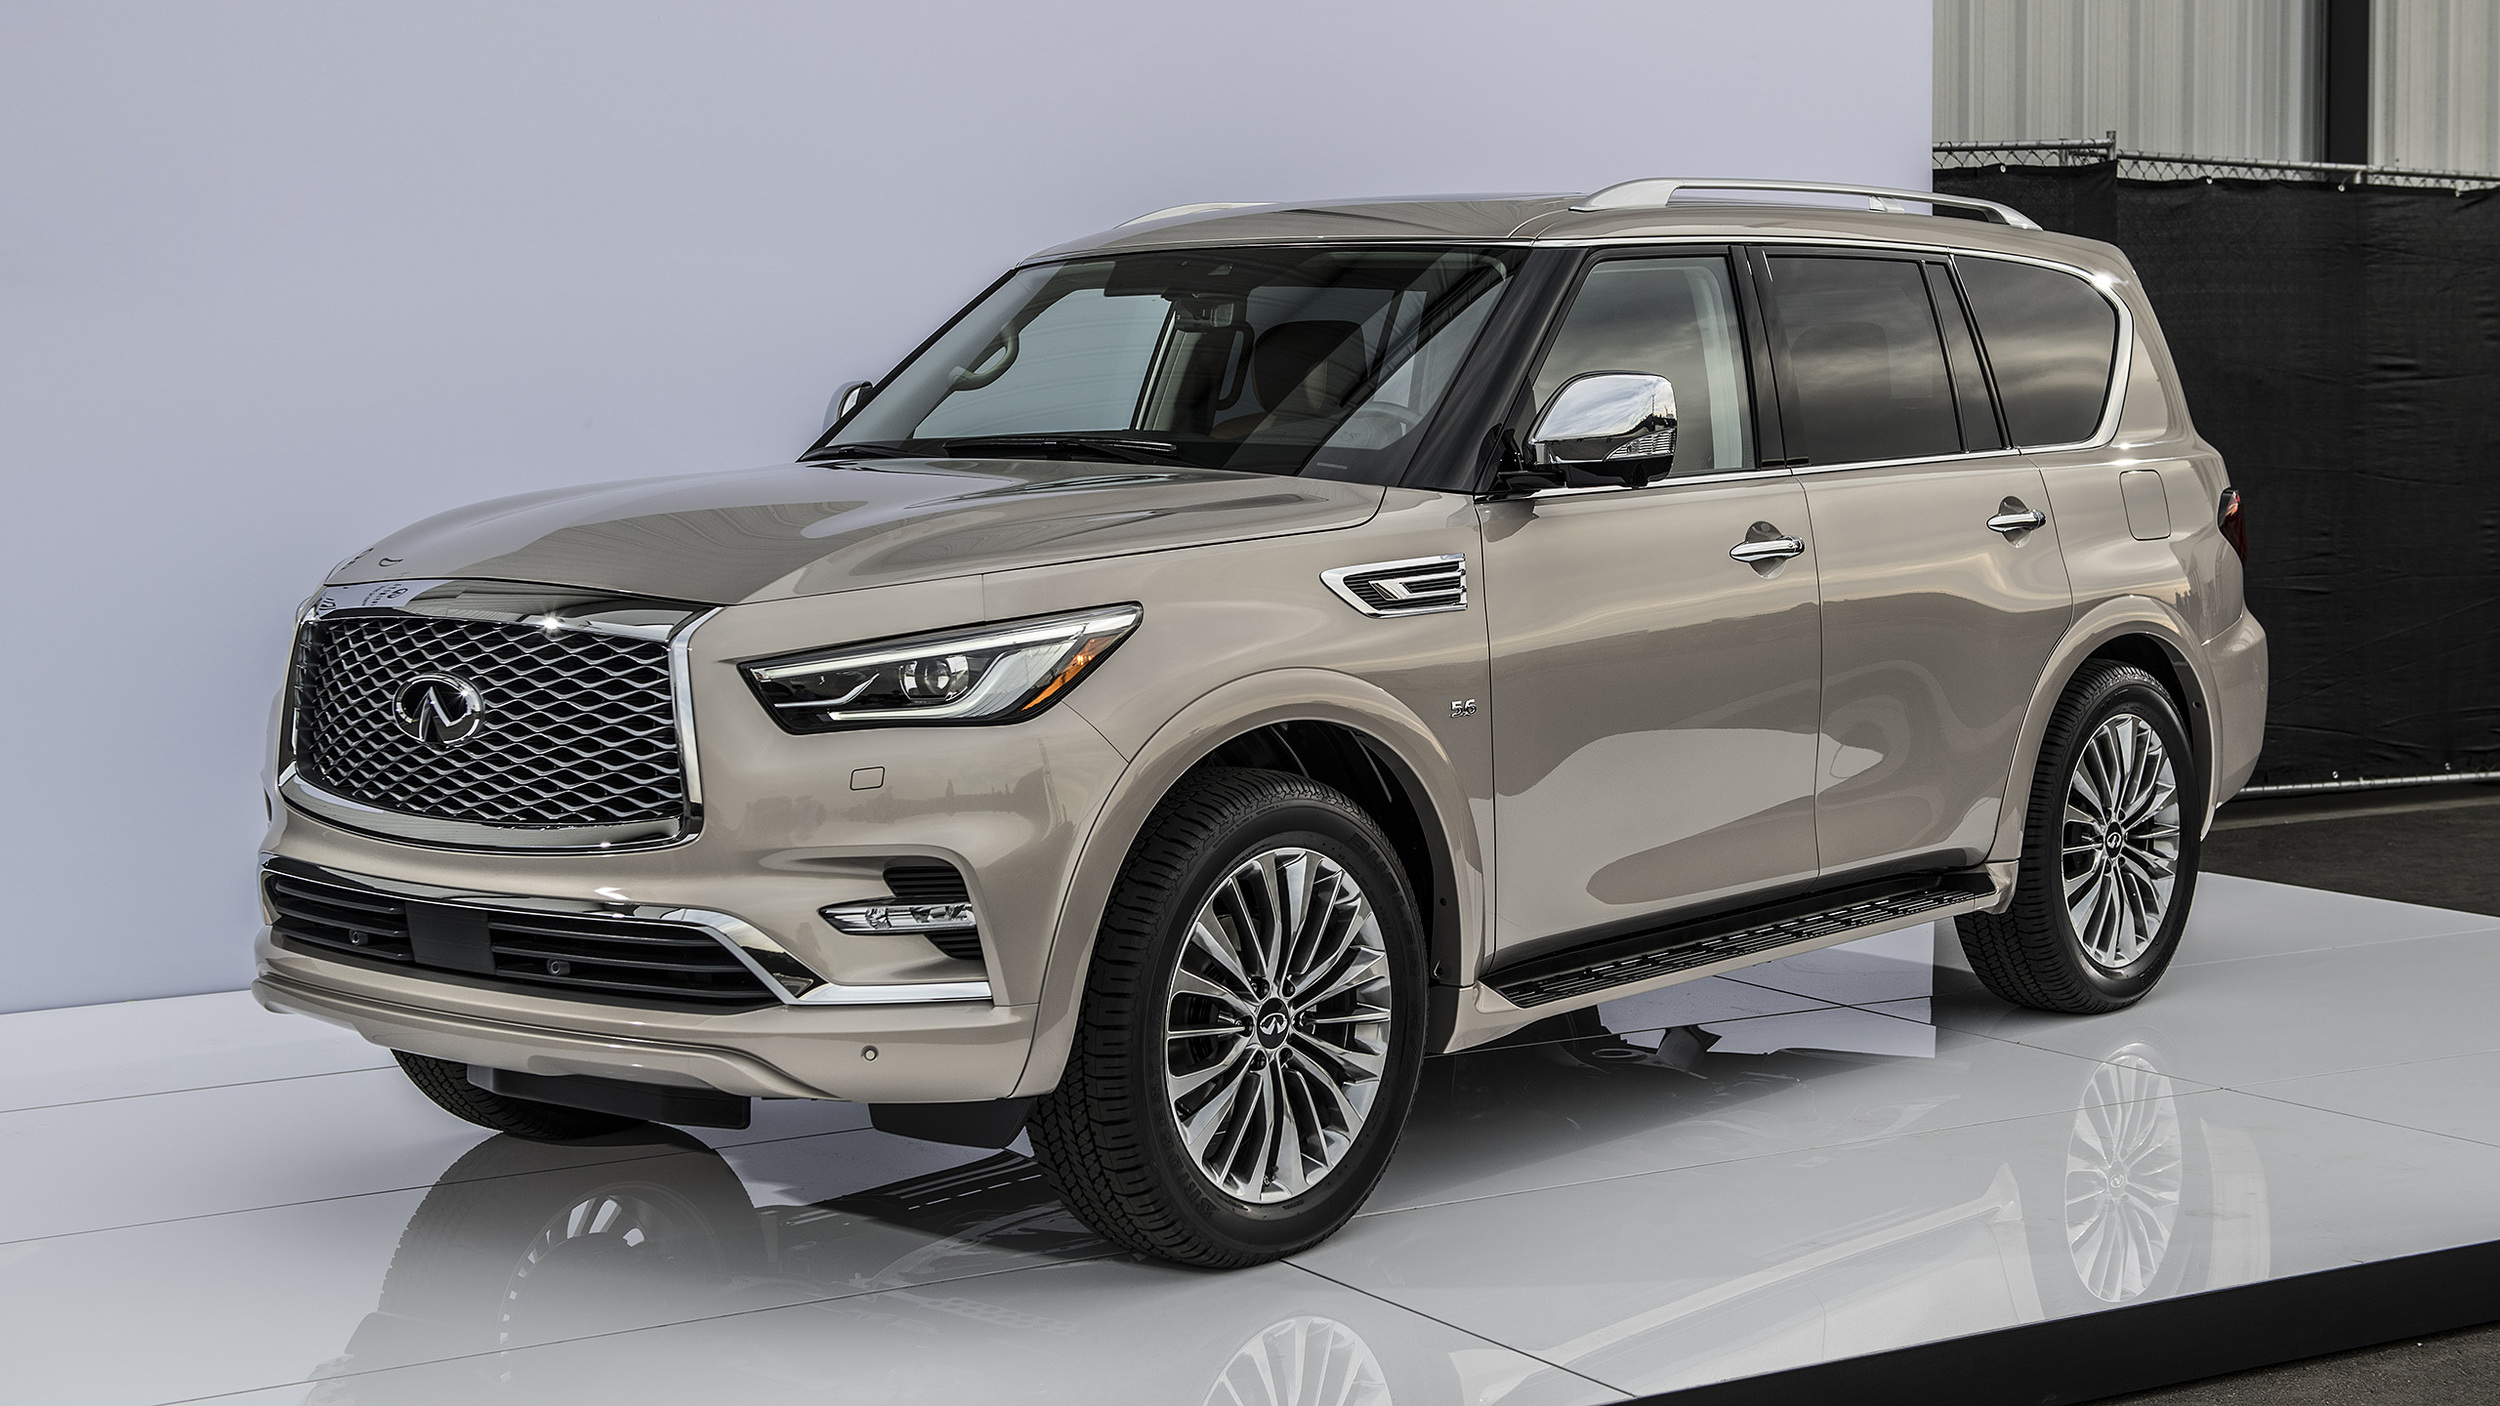 infiniti qx80 rims wiring diagrams wiring diagram schemes. Black Bedroom Furniture Sets. Home Design Ideas